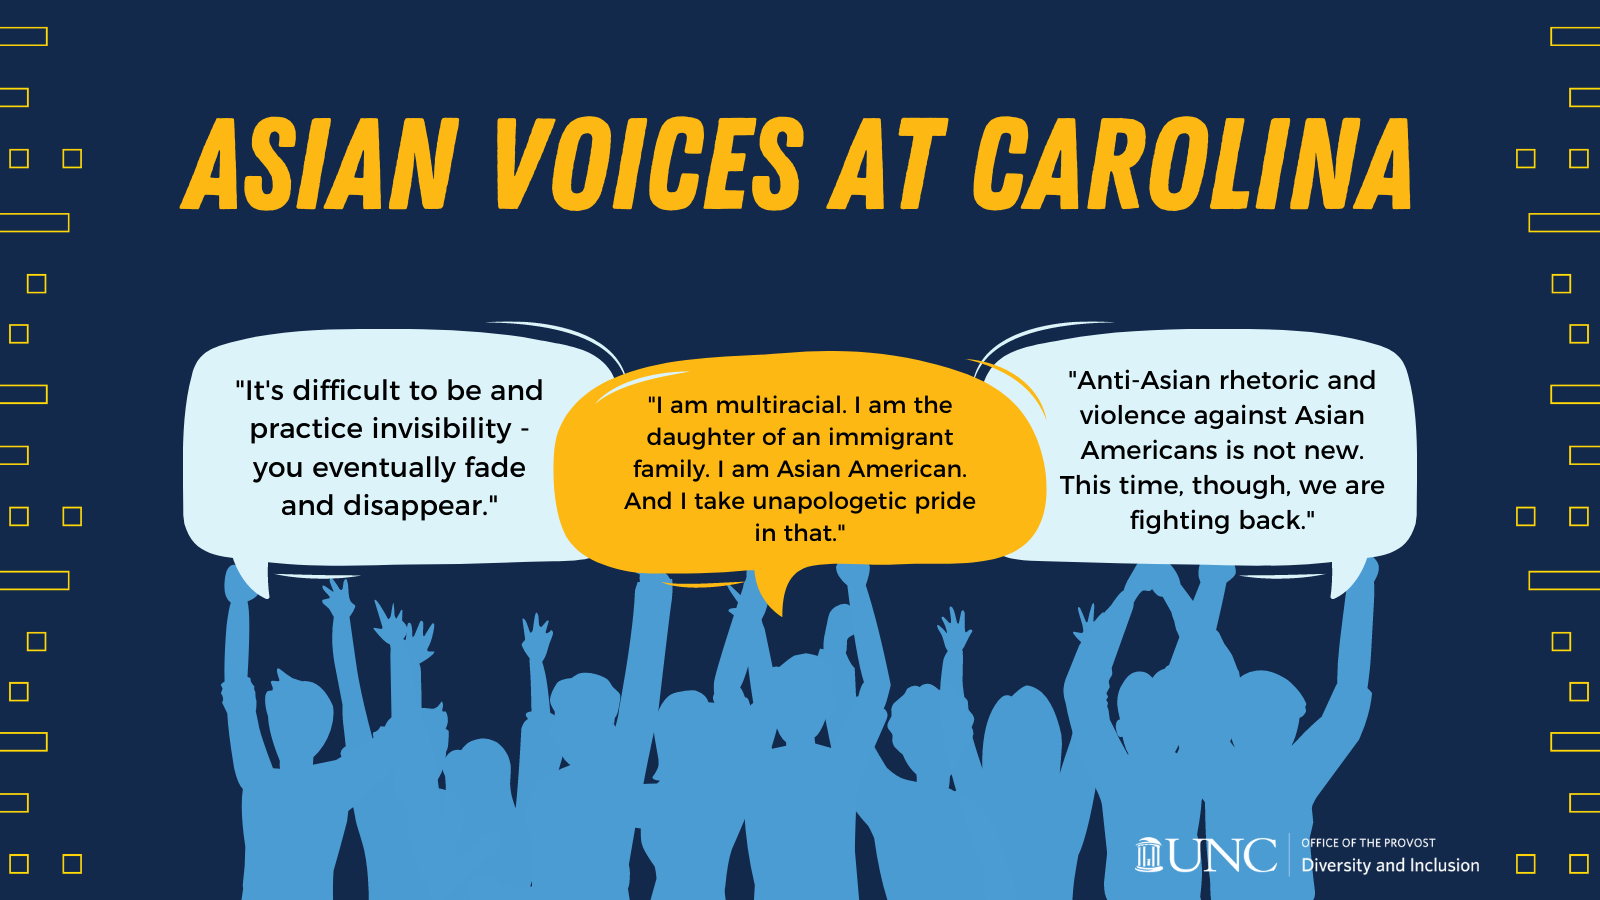 Asian Voices at Carolina Graphic with many people and speech bubbles